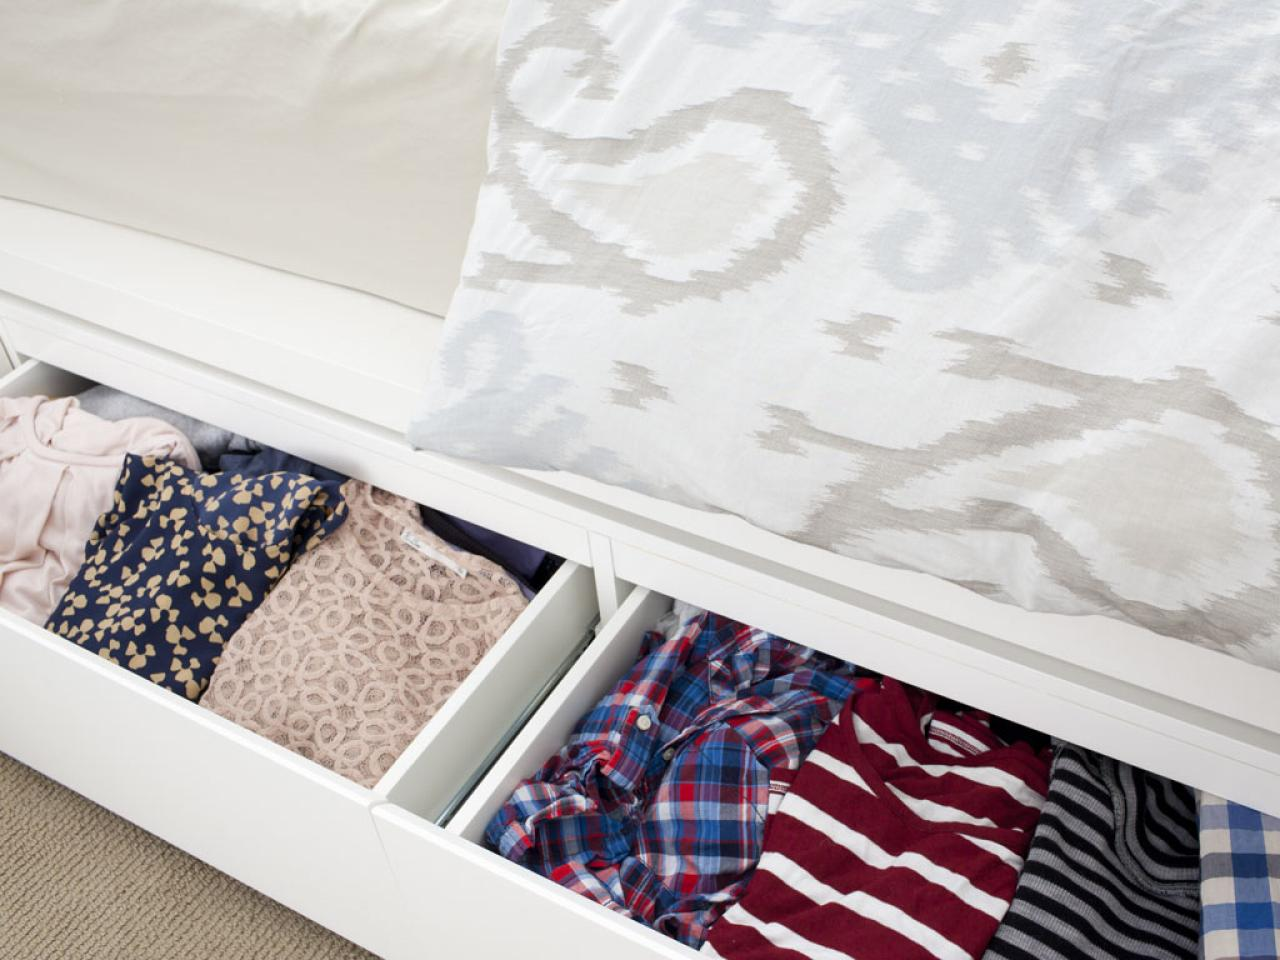 Clothing Storage Ideas For Small Bedrooms 10 Ways To Maximize Under-the-bed Storage | Hgtv